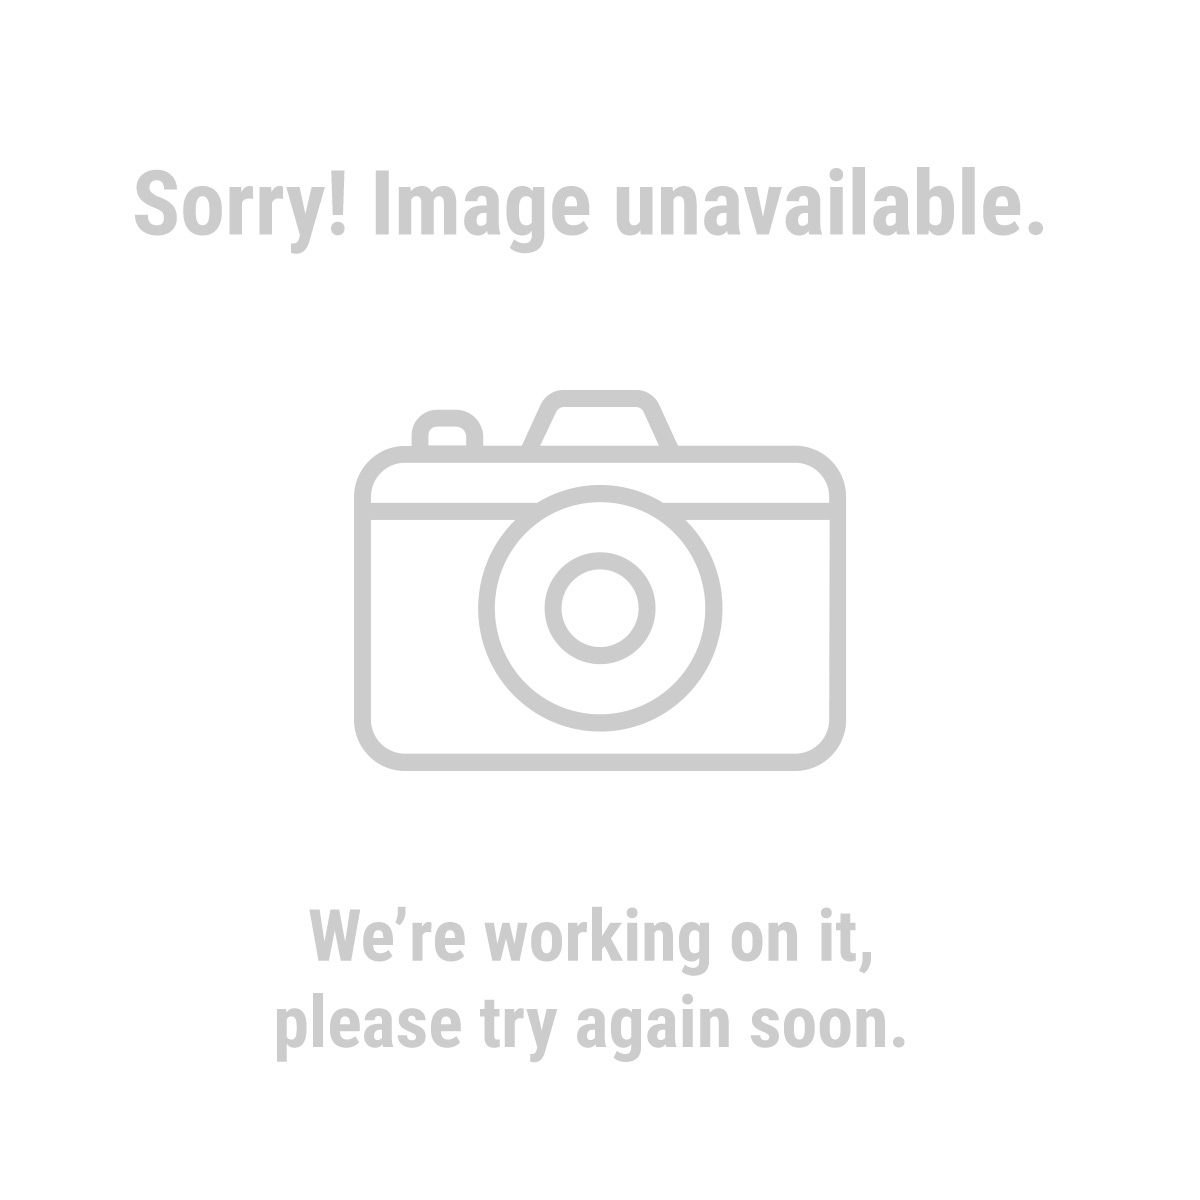 wiring diagram for trailer winch the wiring diagram harbor freight winch wiring diagram vidim wiring diagram wiring diagram